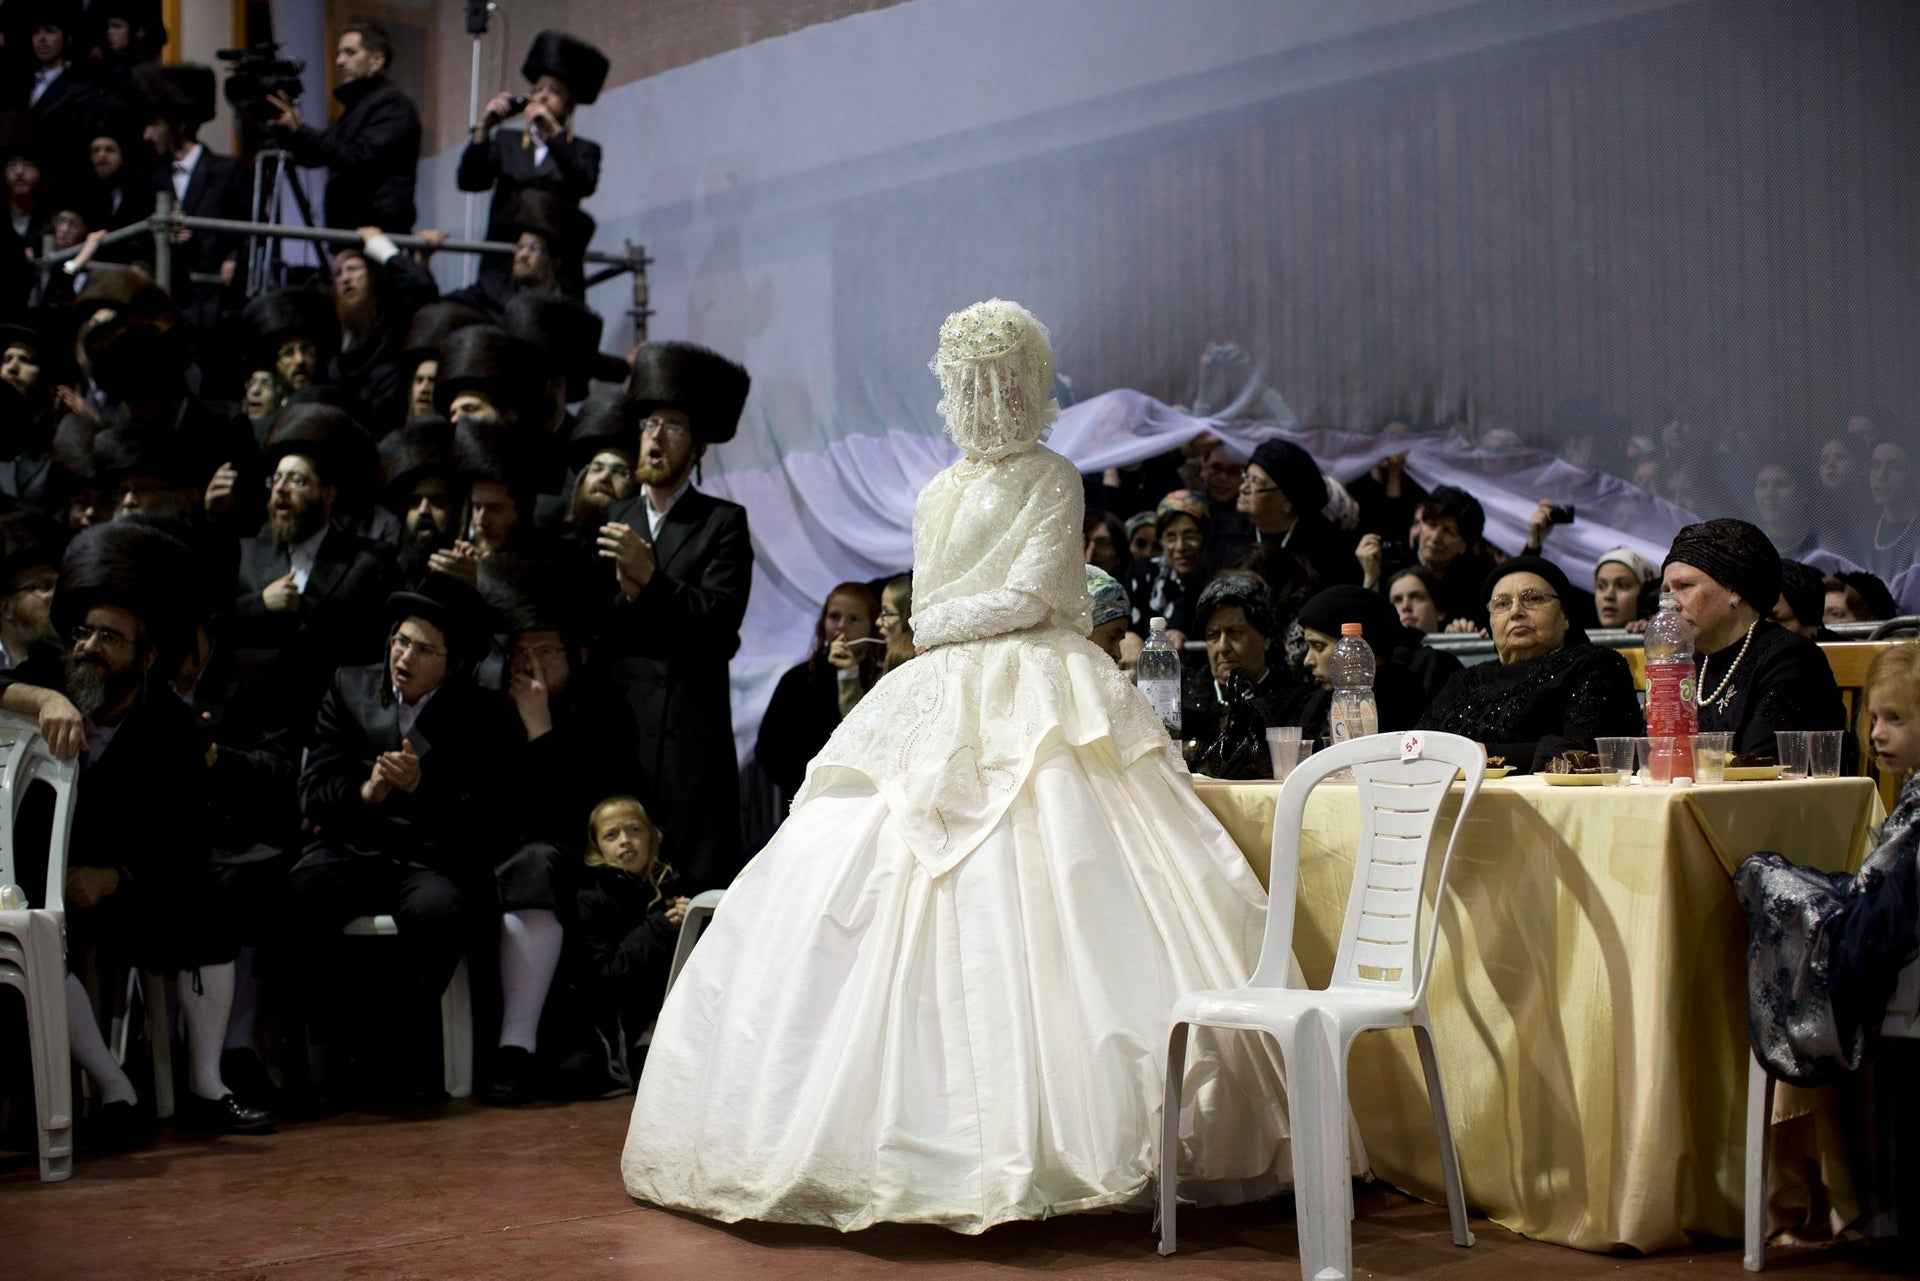 An ultra-Orthodox Jewish bride enters to the men's section of the wedding, to fulfill the Mitzvah tantz, in which family members and honored rabbis are invited to dance in front of the bride, often holding a gartel, and then dancing with the groom, during her wedding to the grandson of the Rabbi of the Tzanz Hasidic dynasty community, in Netanya, Israel,in Netanya, Israel, Wednesday, March 16, 2016.